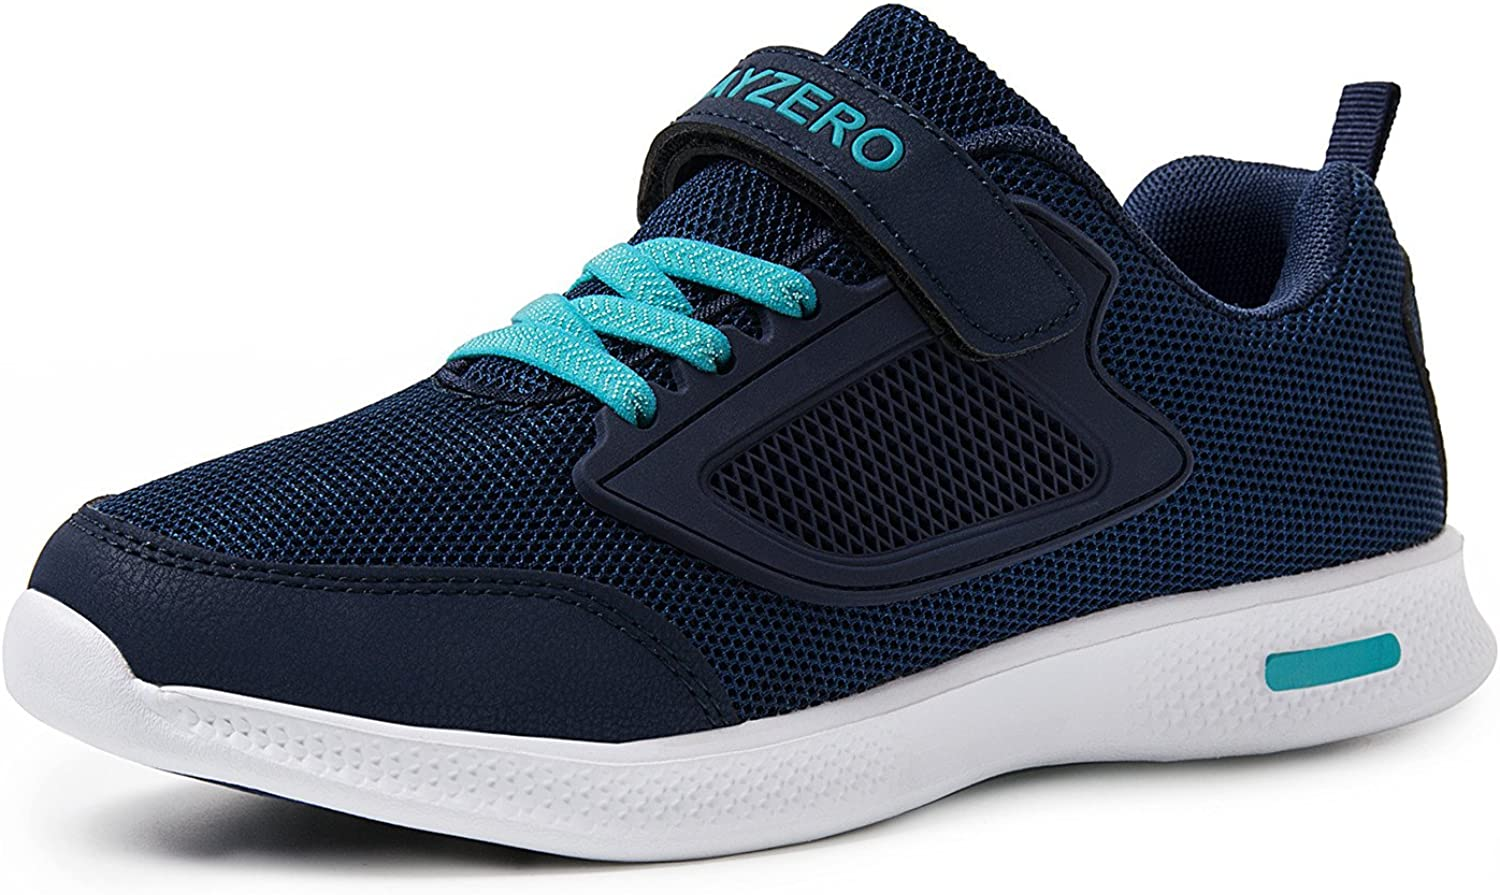 Vivay Boys Girls Lightweight Tennis shoes Kid's Breathable Casual Running Sneakers Anti-Collision Toe